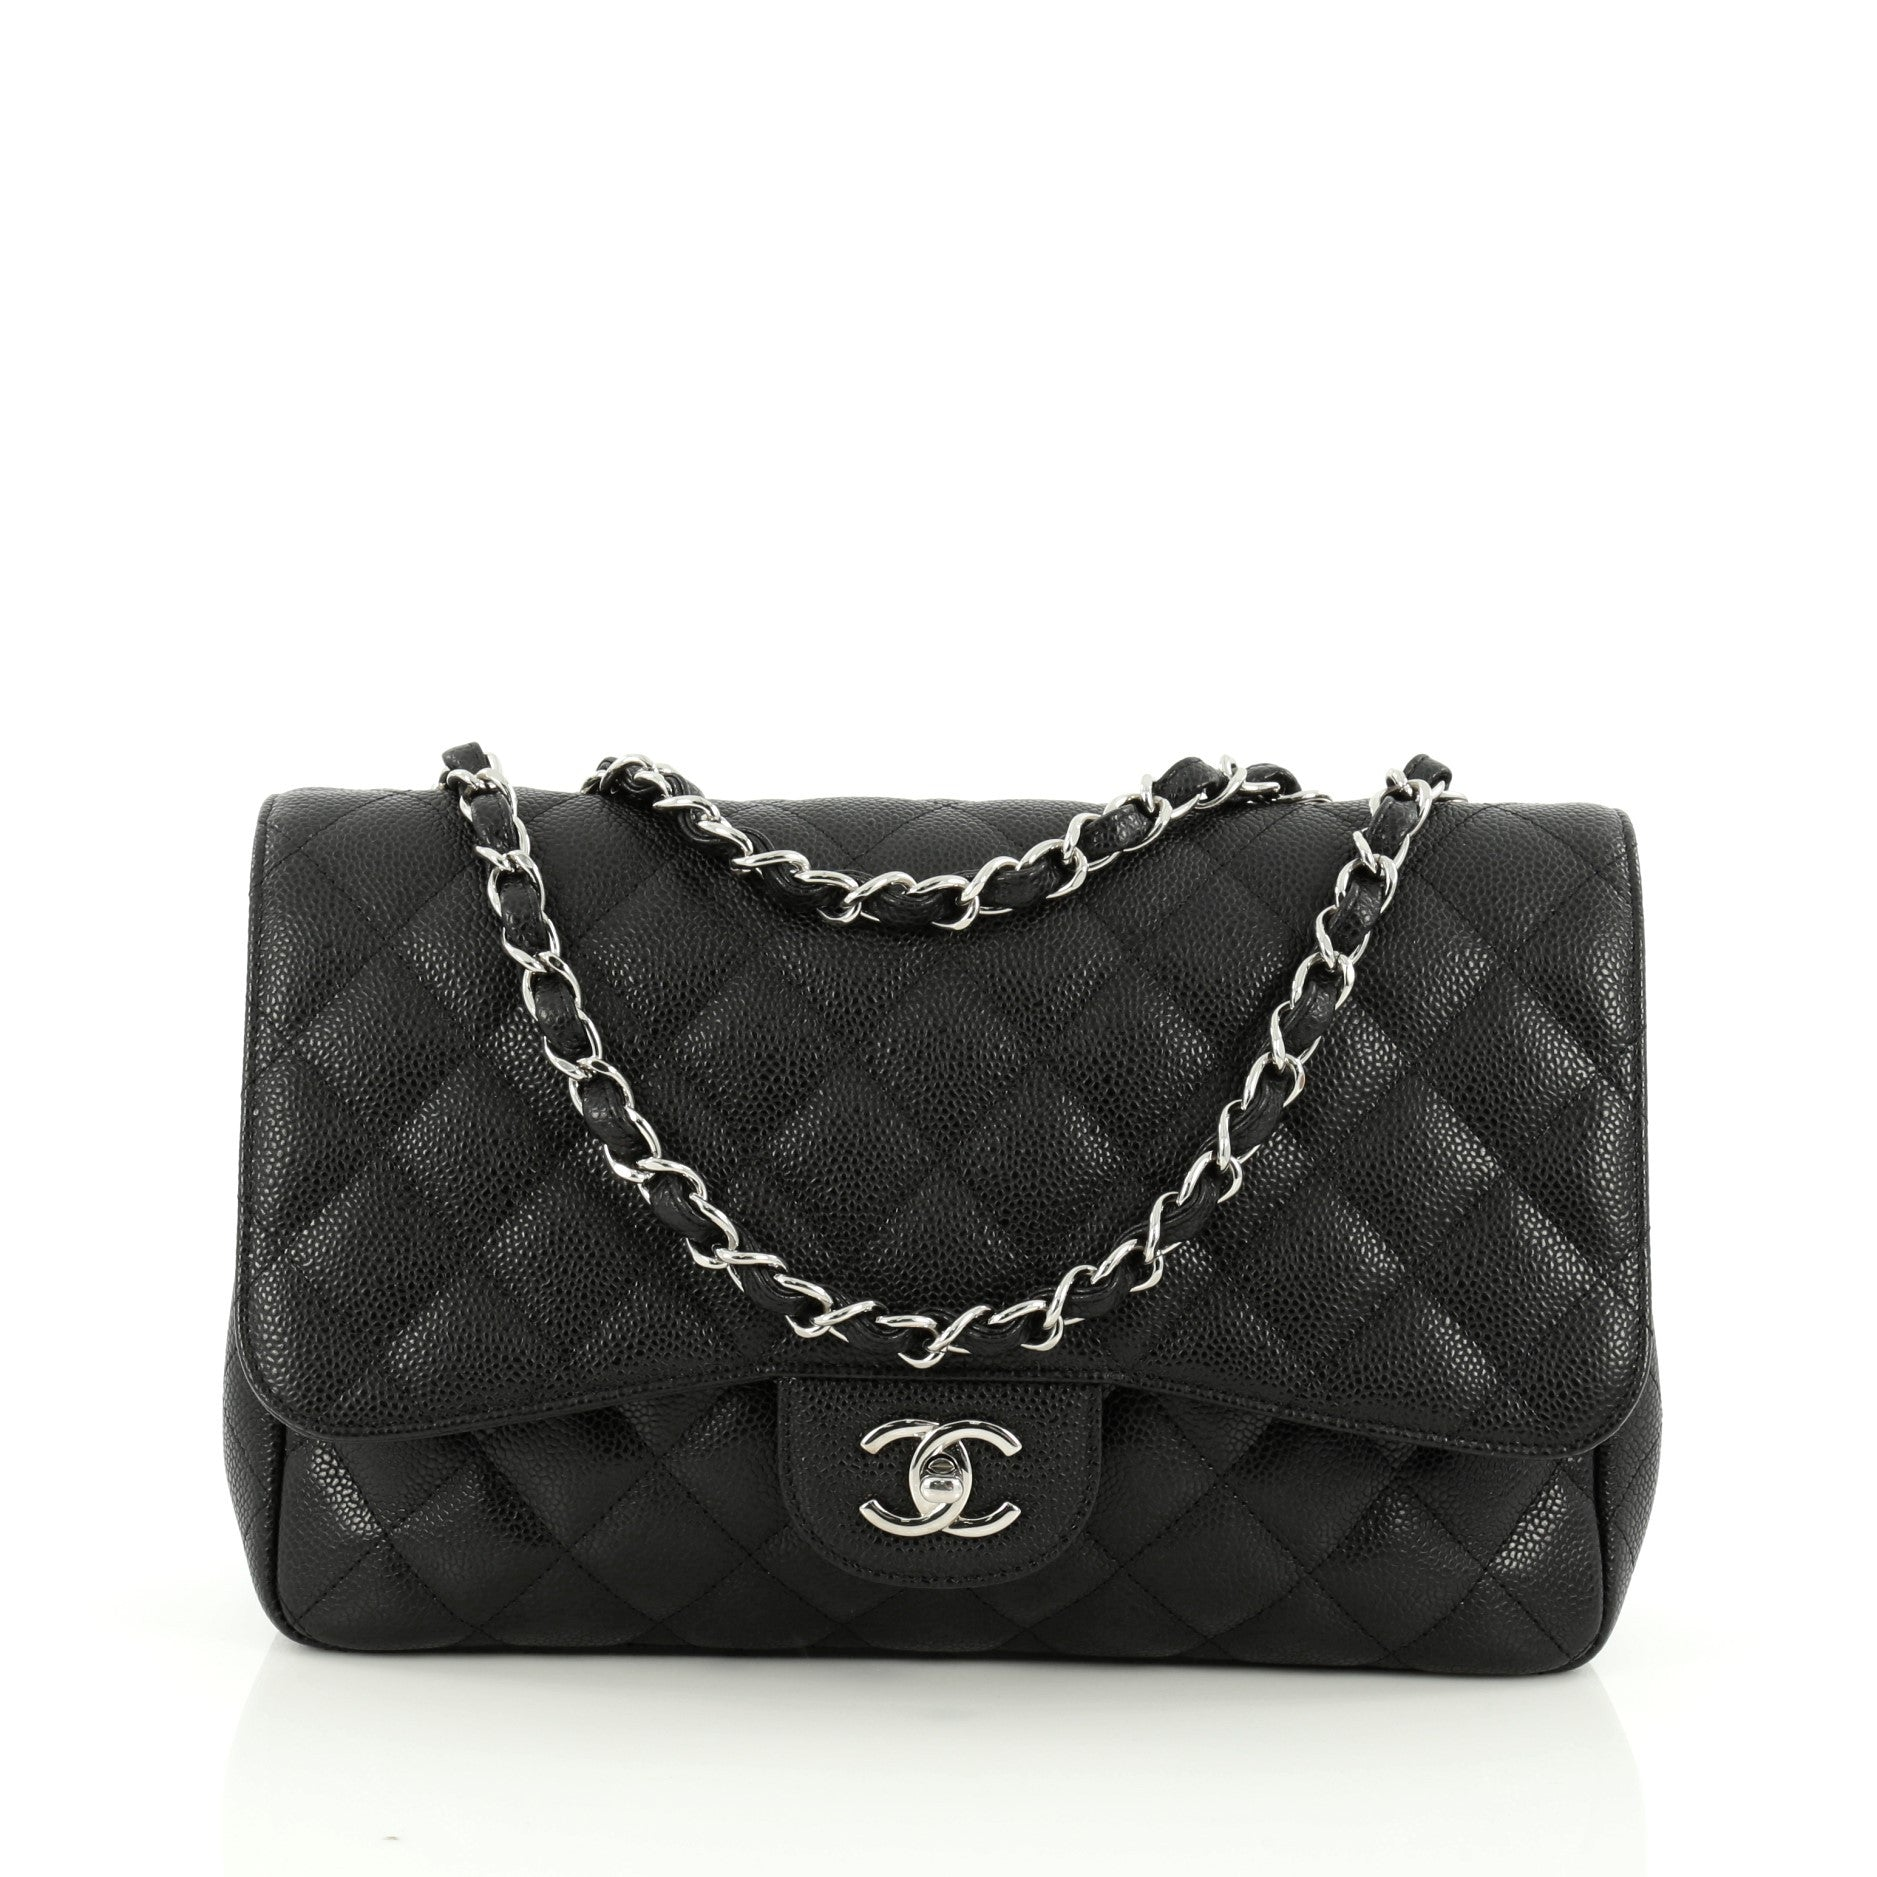 2f5048740388 17042-01_Chanel_Classic_Single_Flap_Bag_Quilted_Ca_2D_0003.jpg?v=1487716399